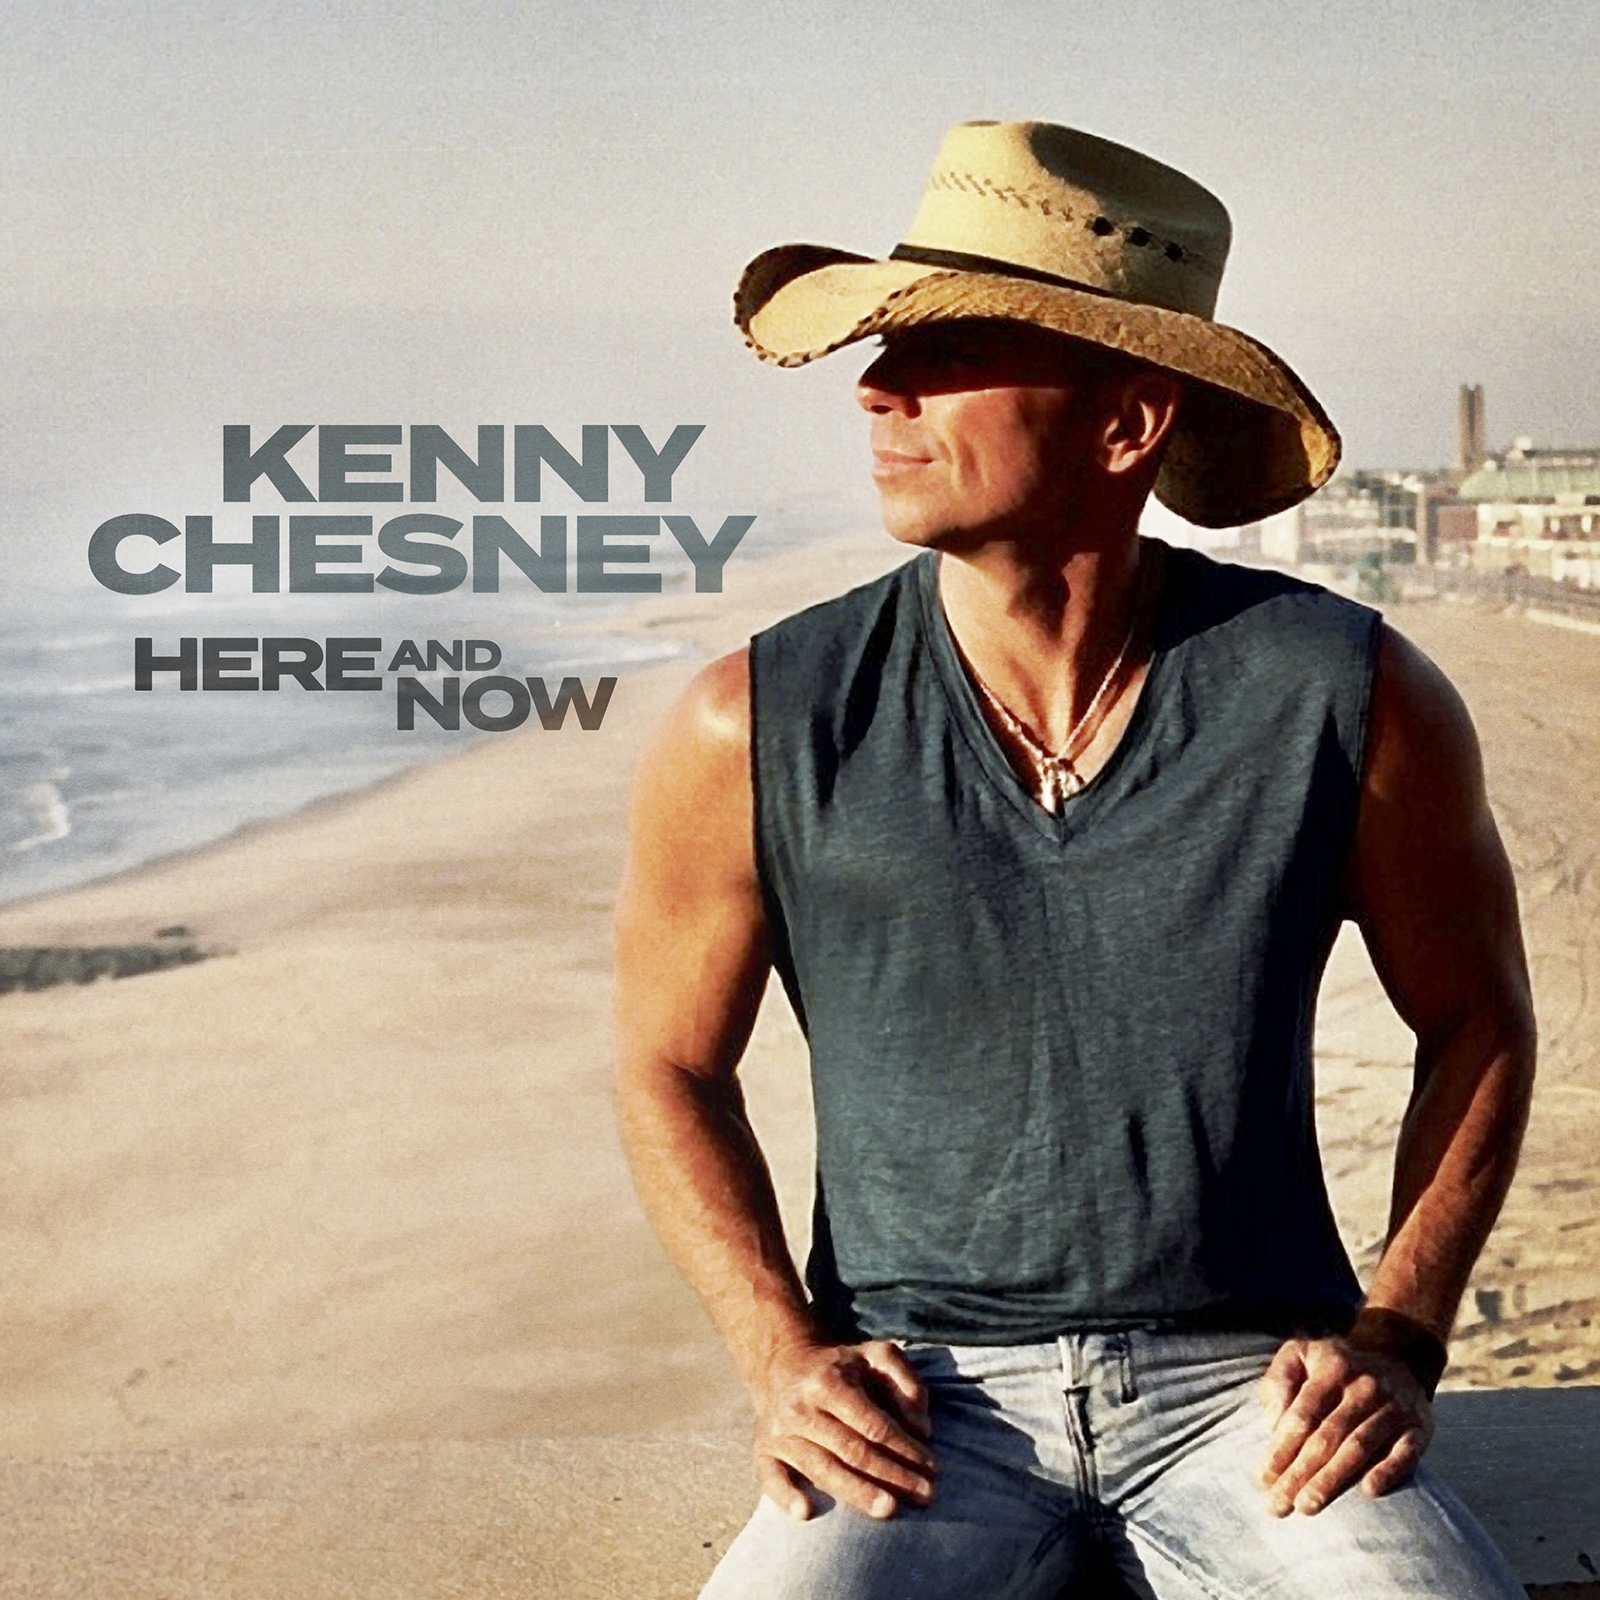 Kenny Chesney Here And Now album cover